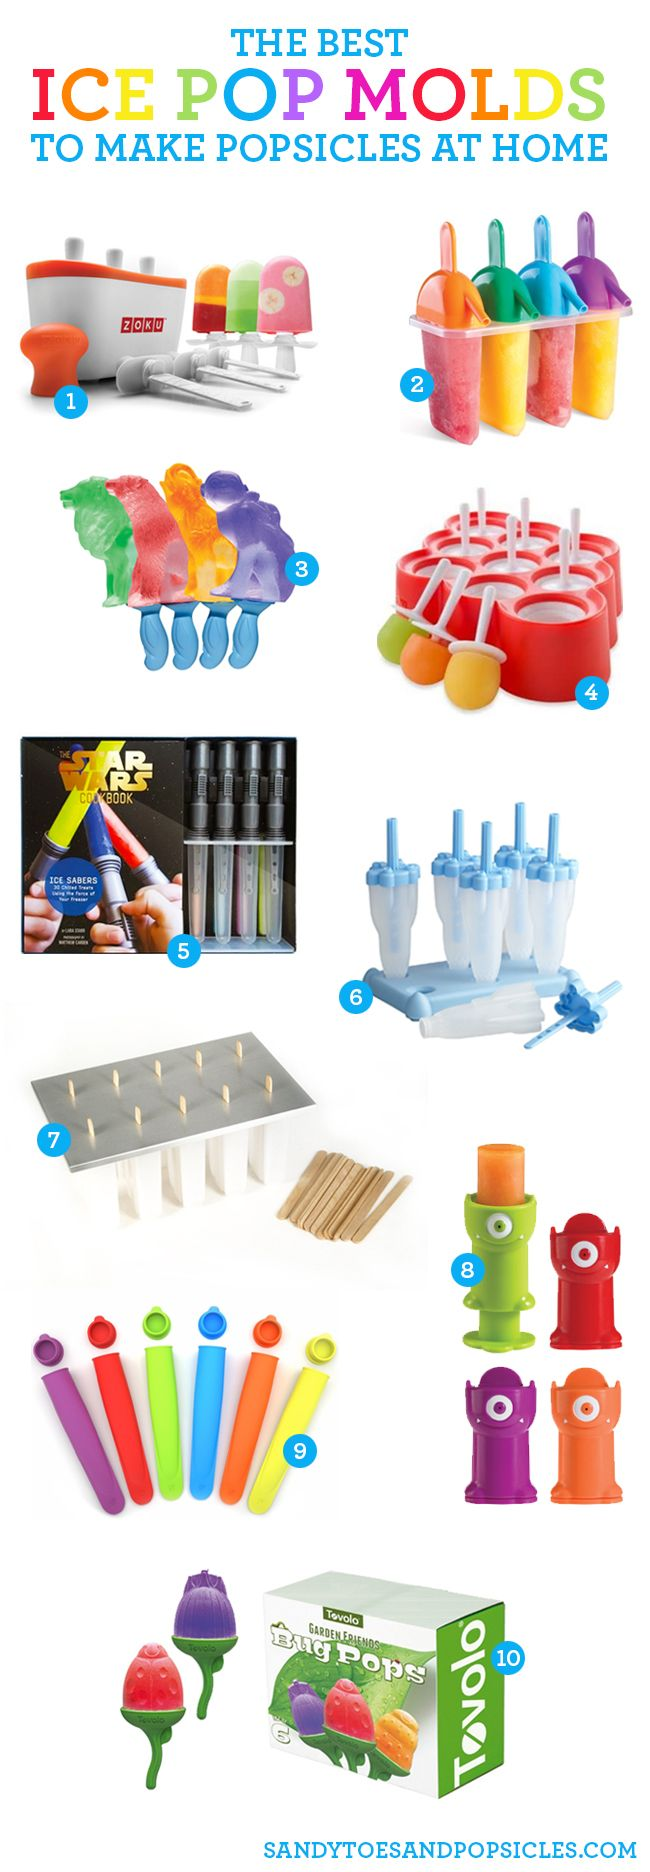 10 Great Ice Pop Molds for Maiking Homemade Popsicles - Popsicle Blog